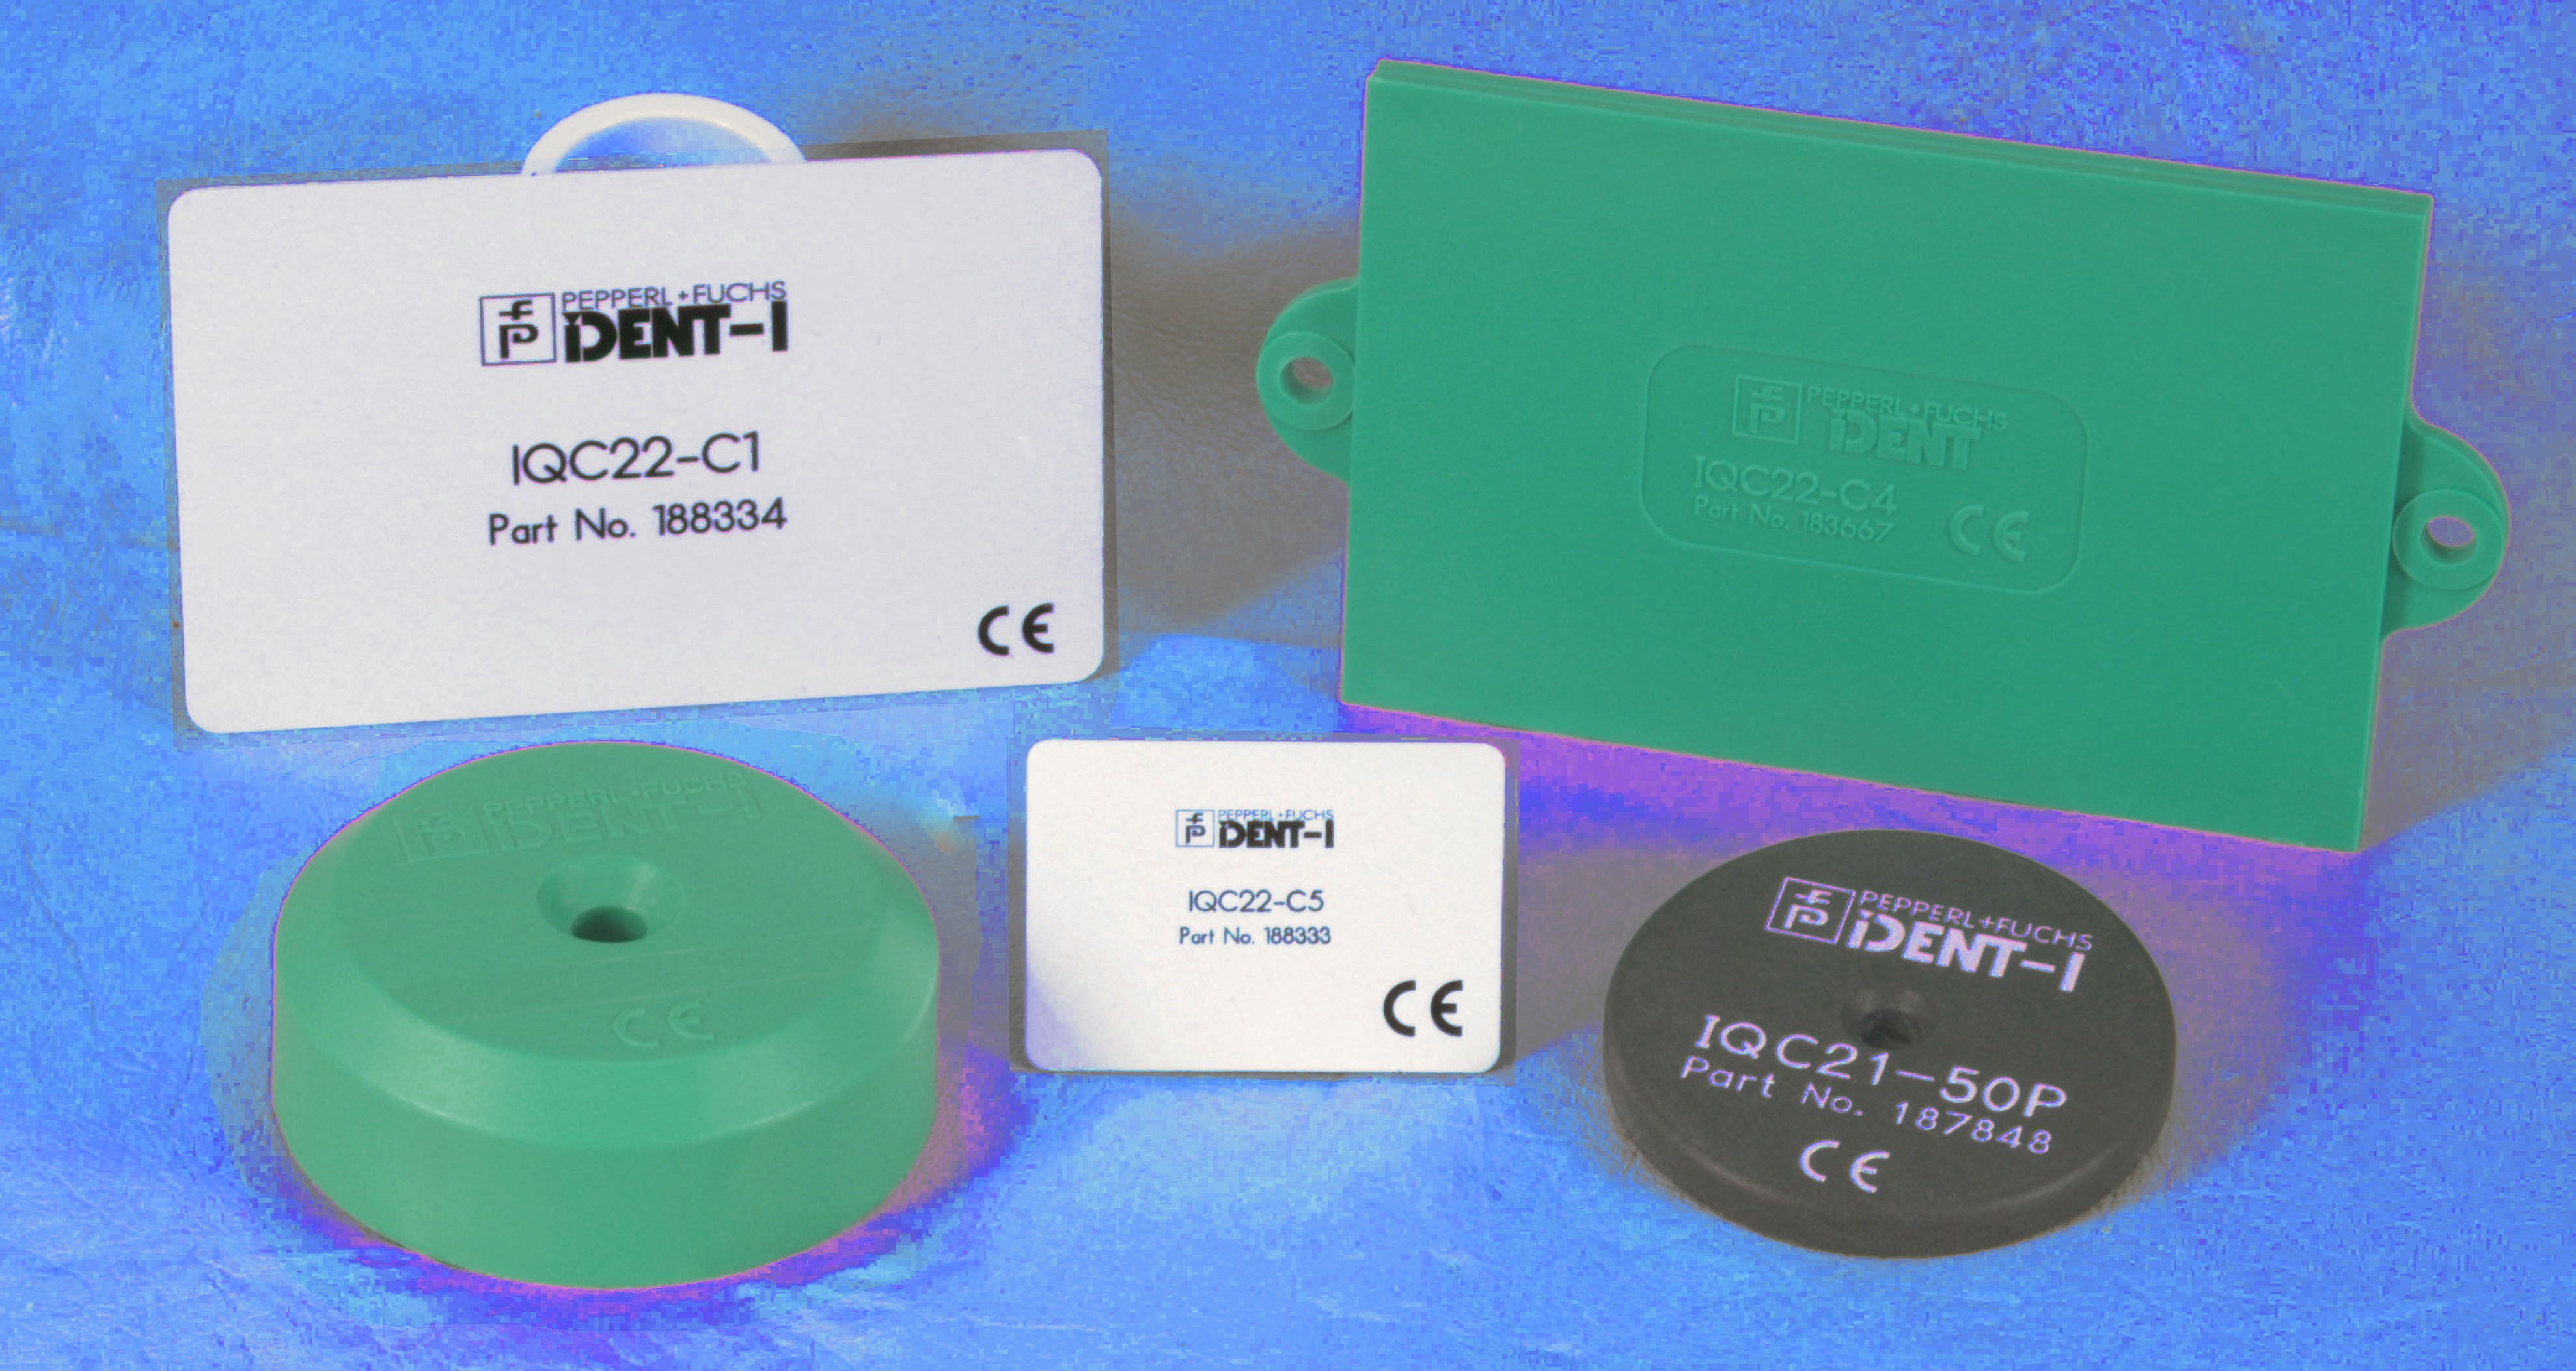 RFID Tags and Frequency Ranges